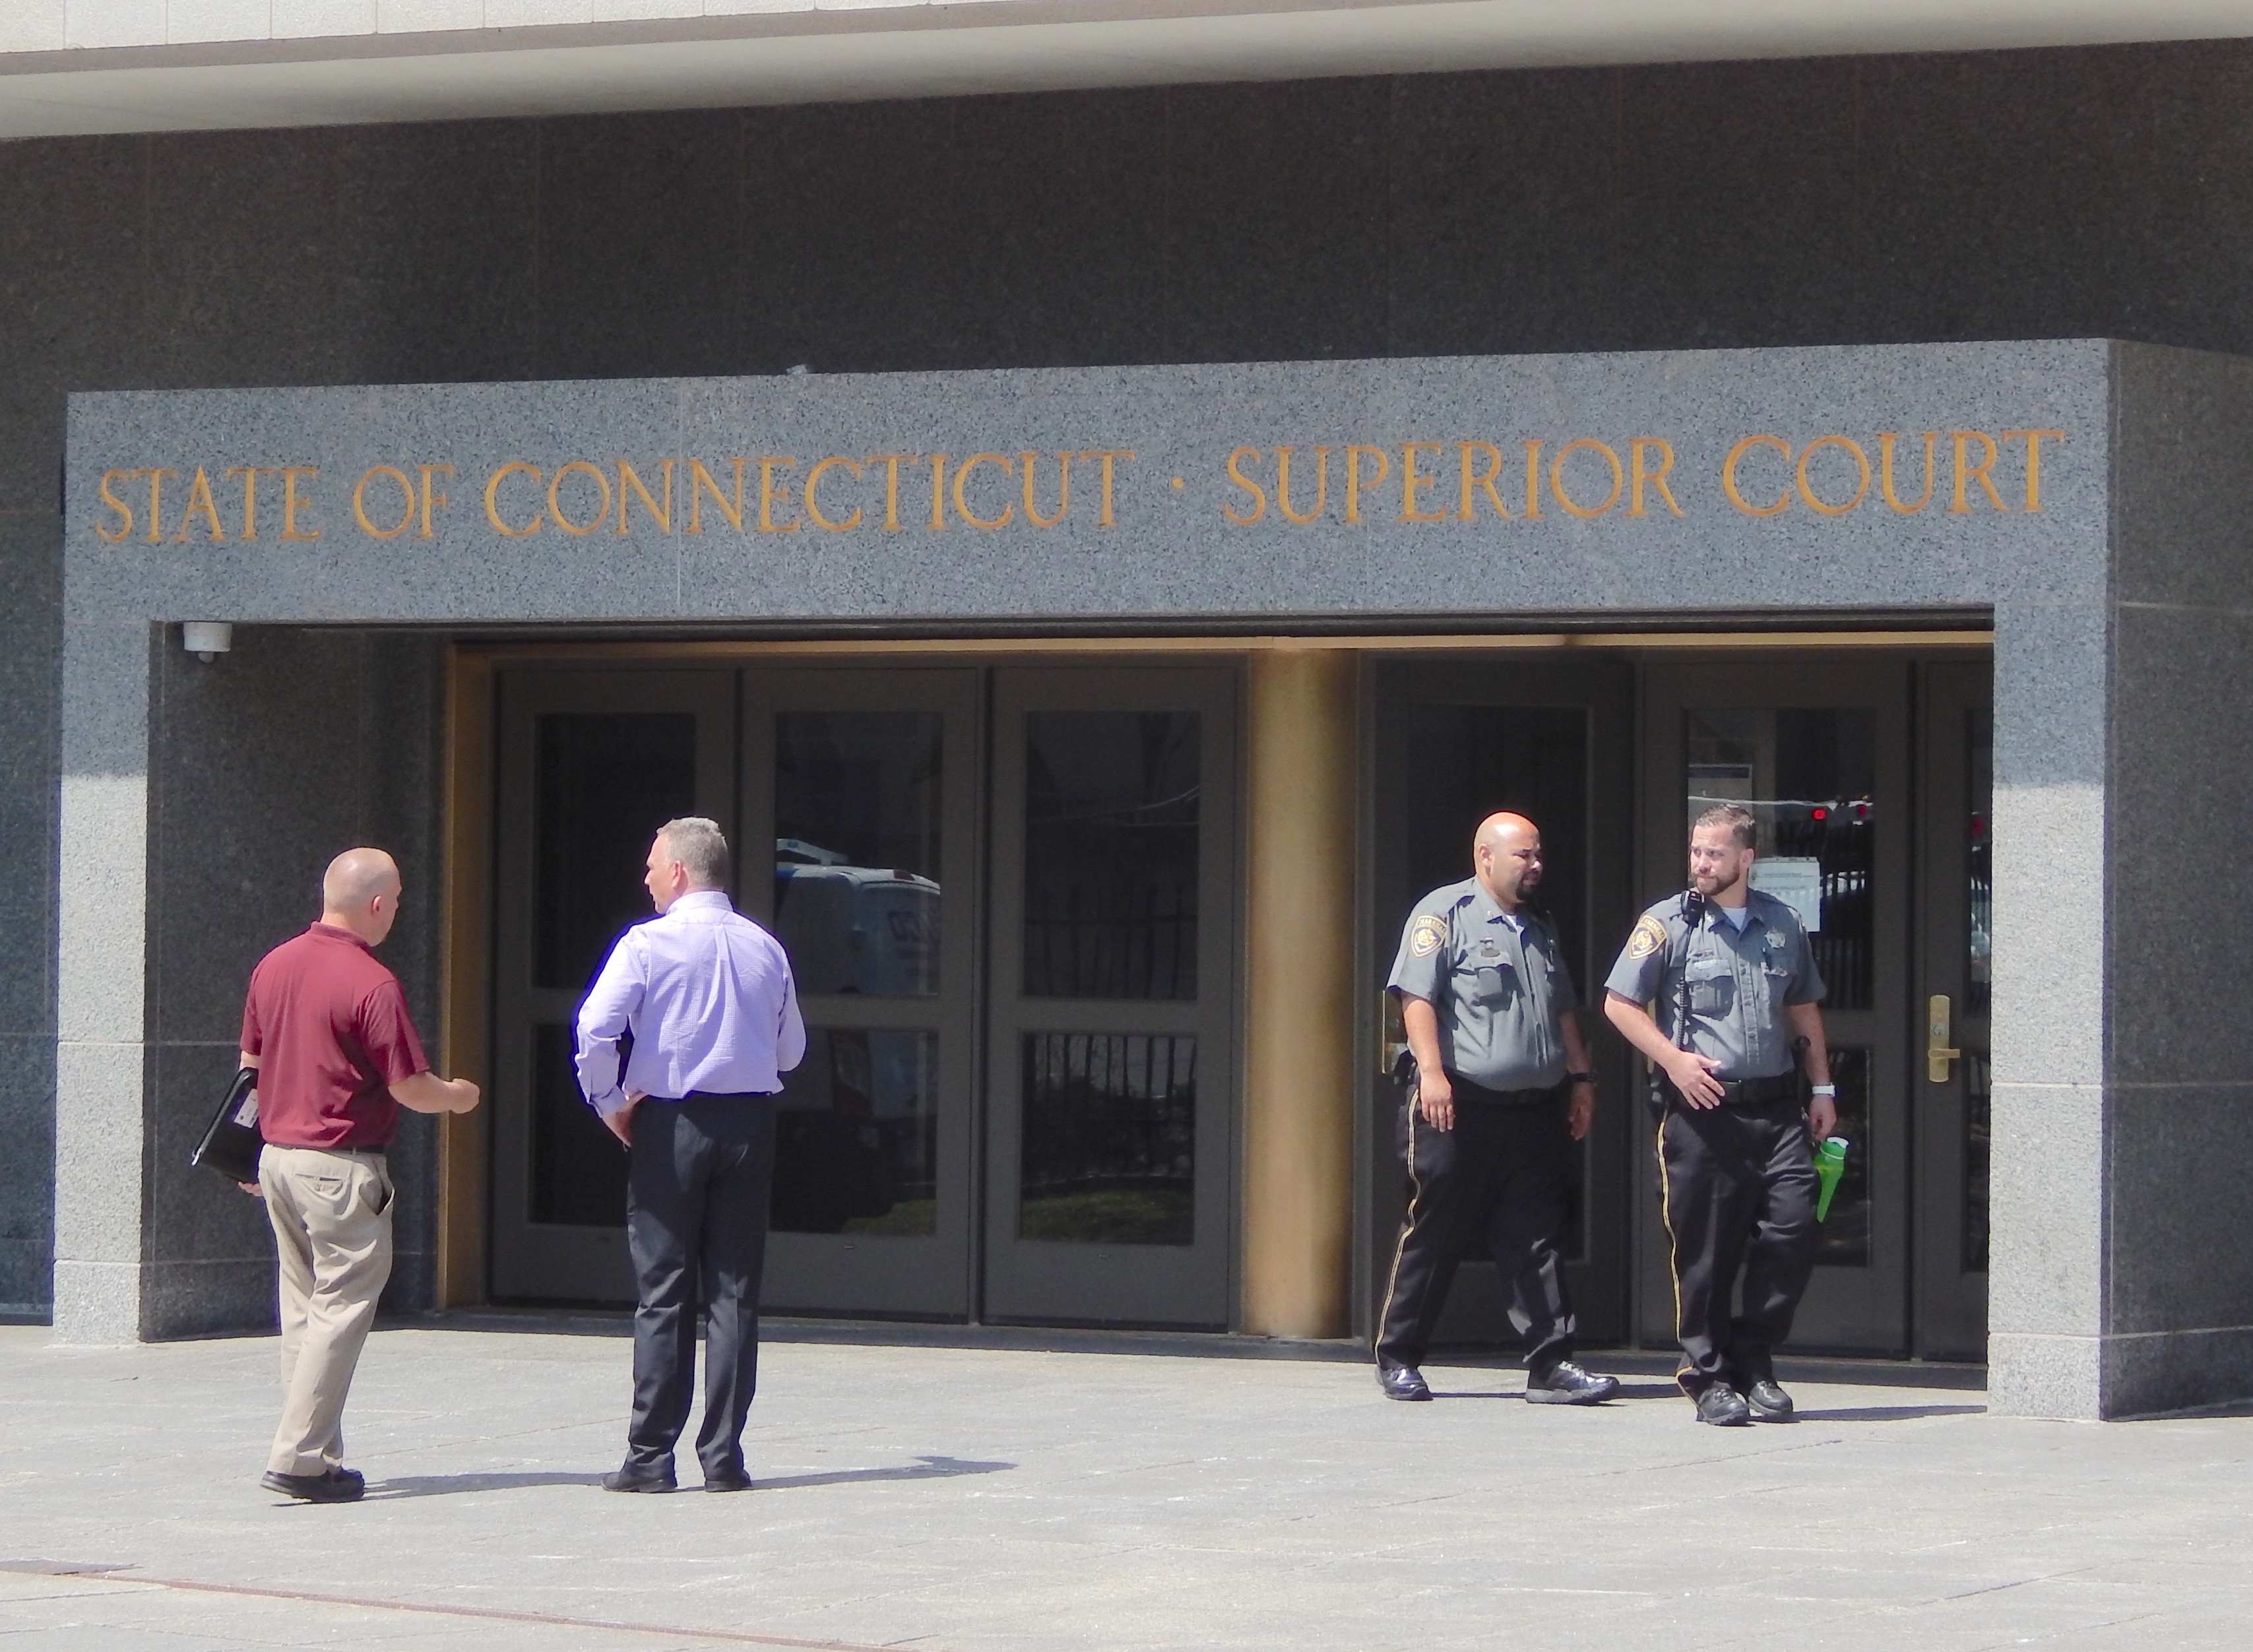 Marshals drop labor complaint over police guards at CT courts